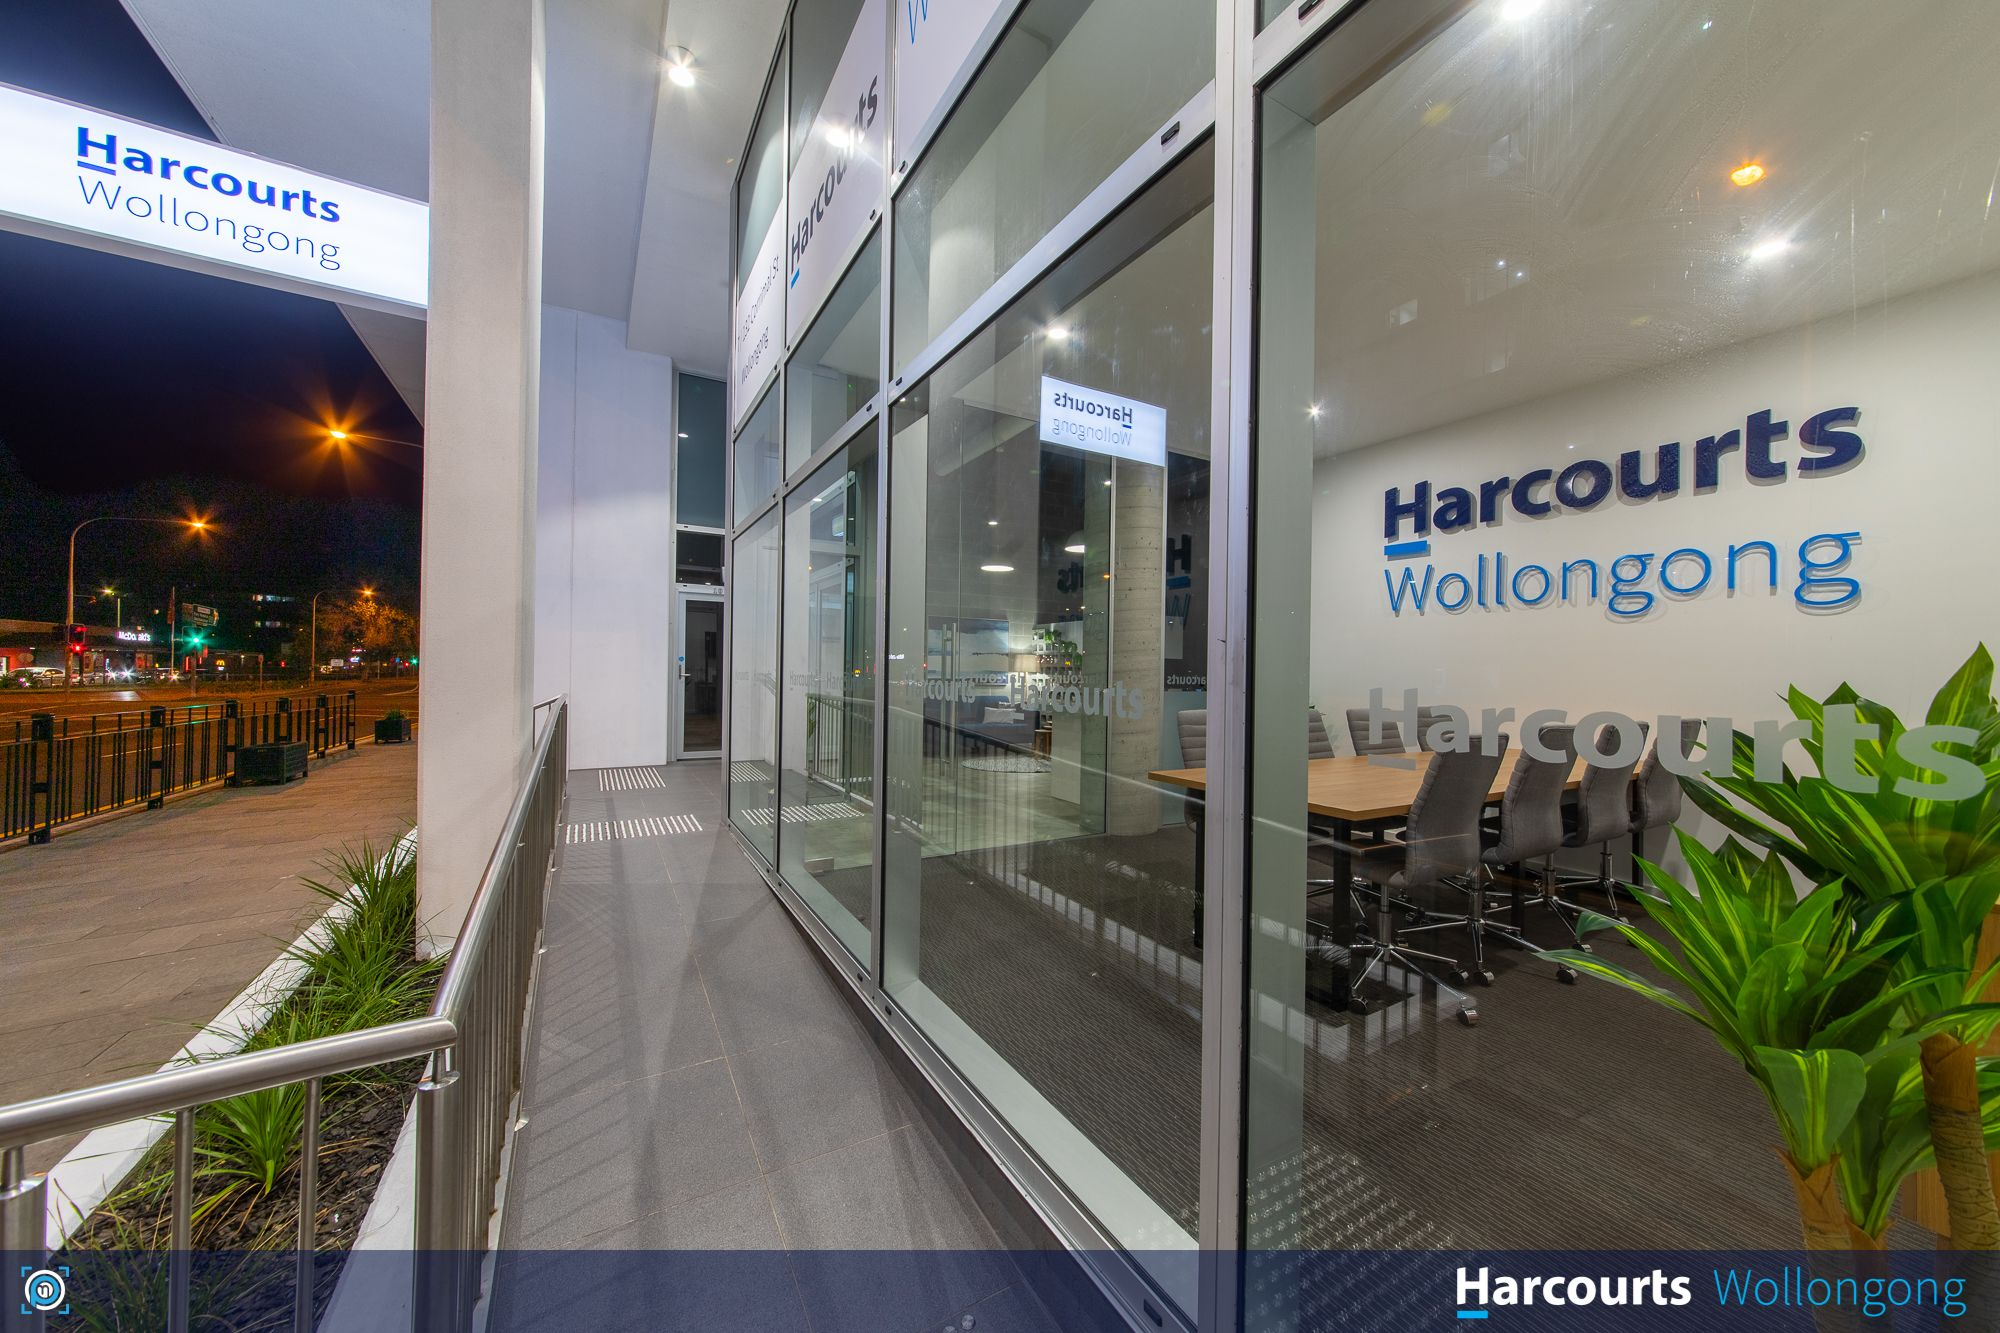 Harcourts Wollongong wheel chair access